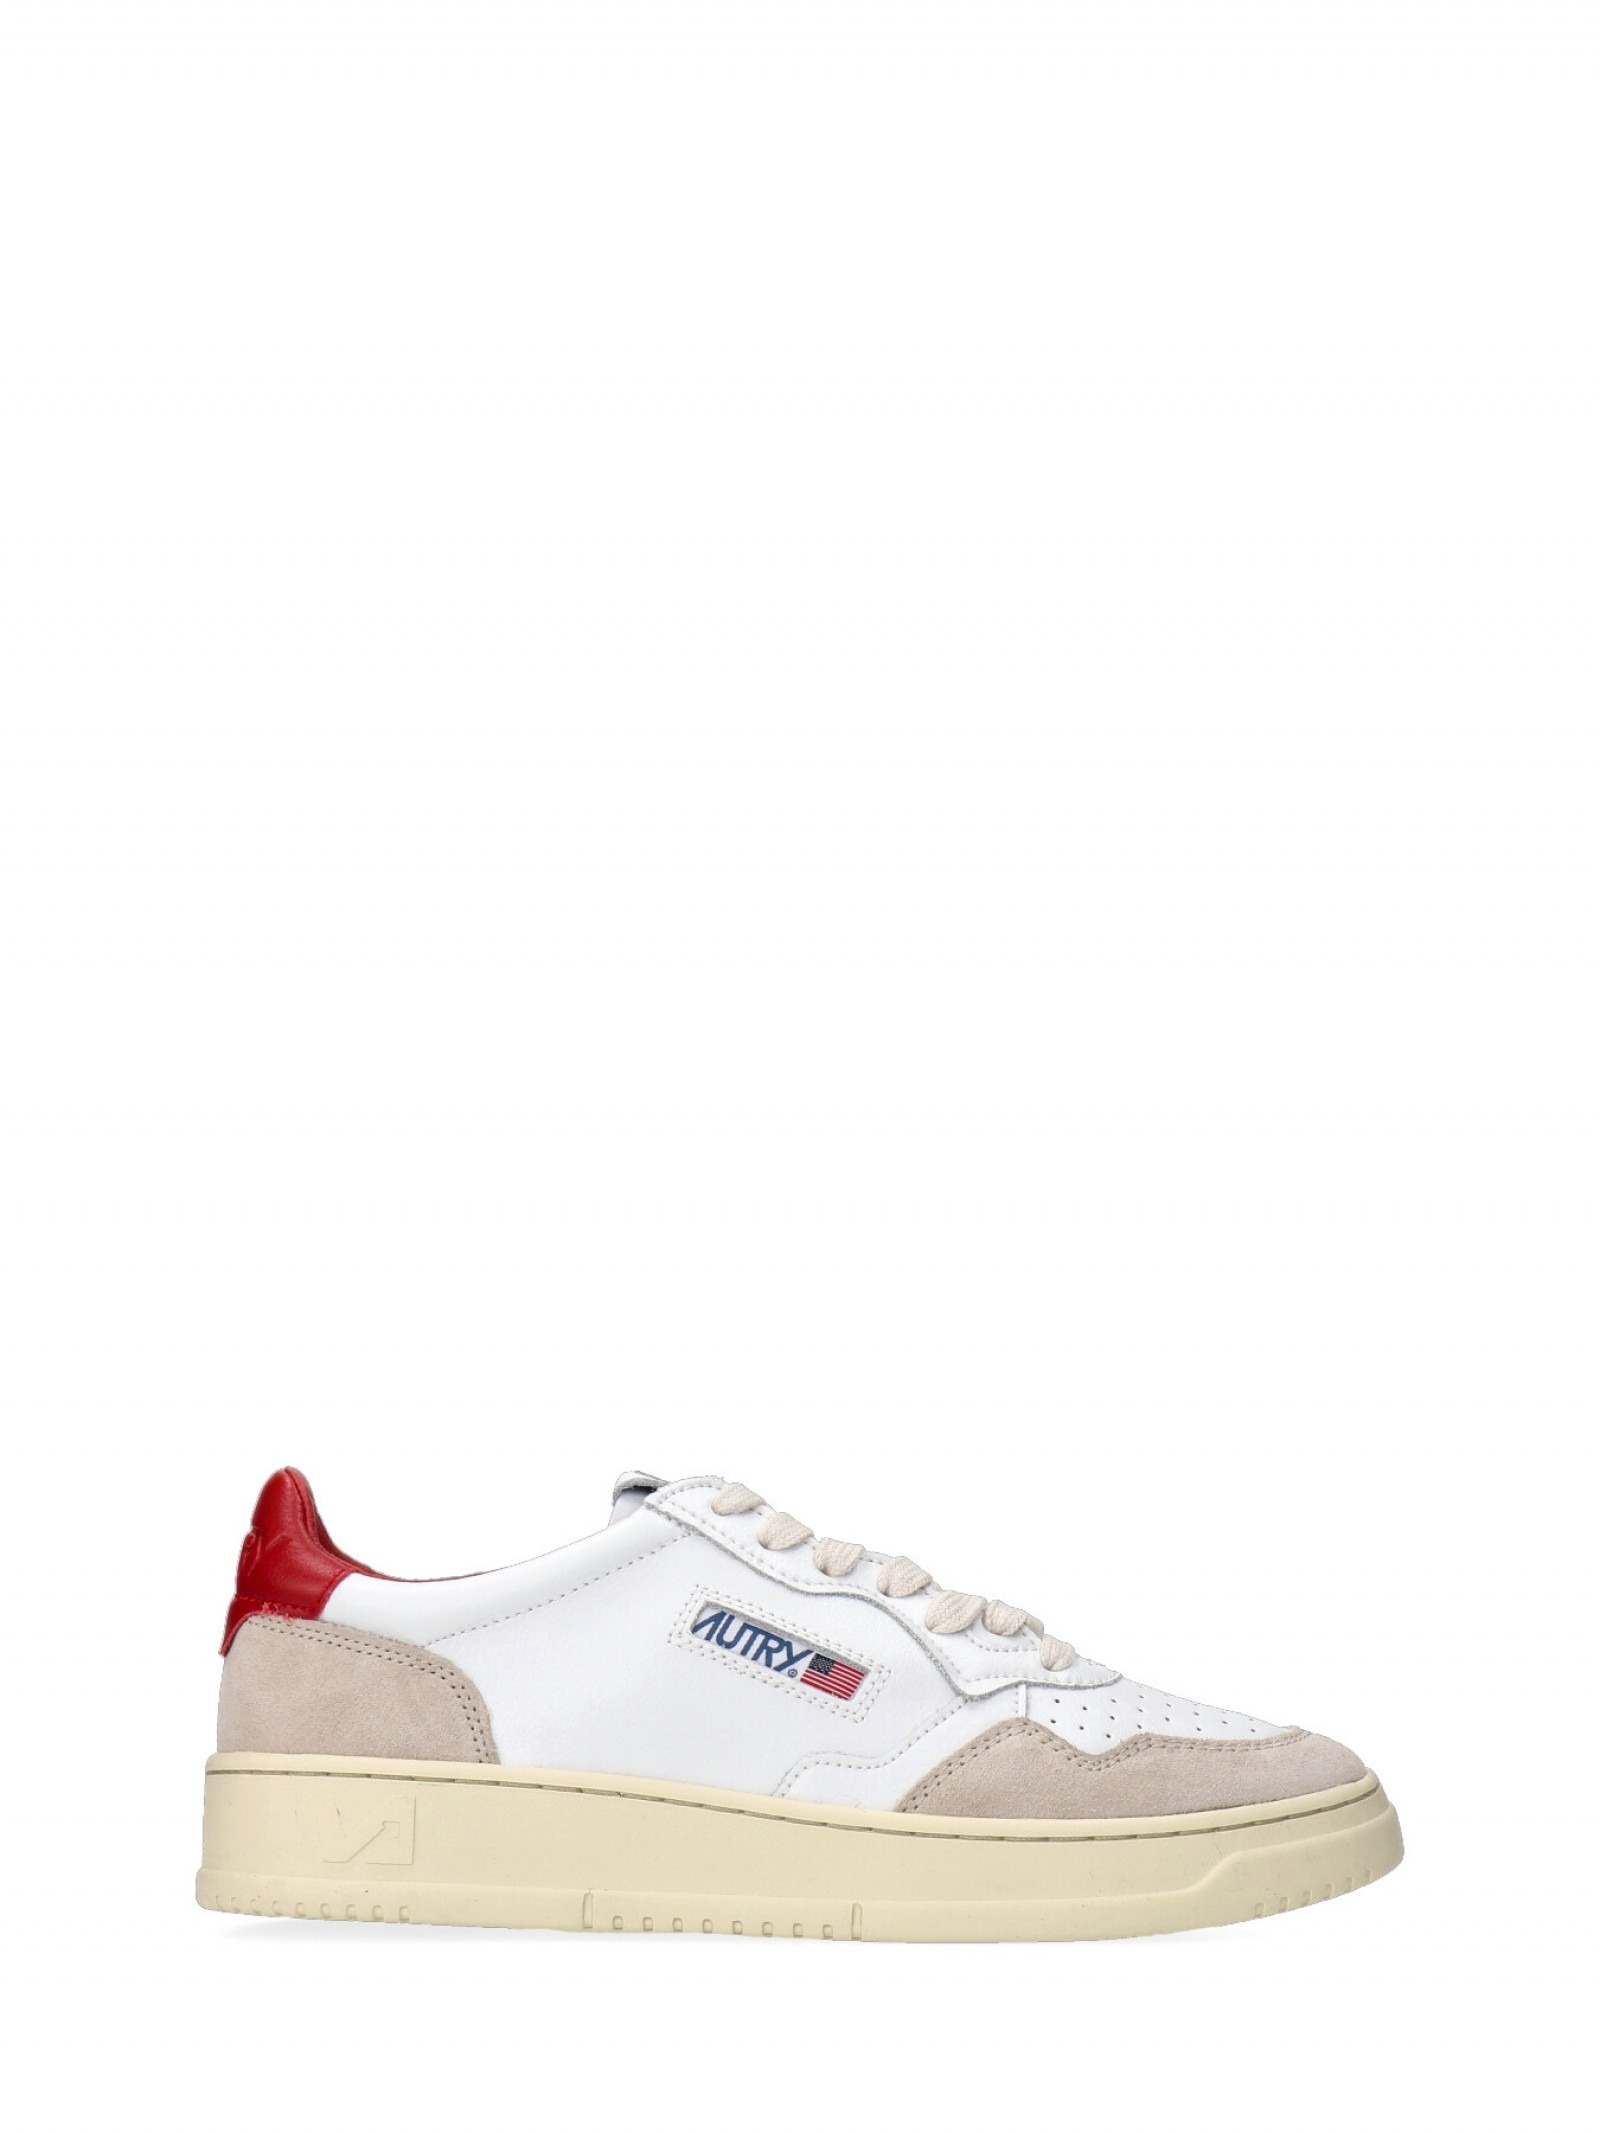 Autry -  - E9021 - AULMLS38-WHT-RED